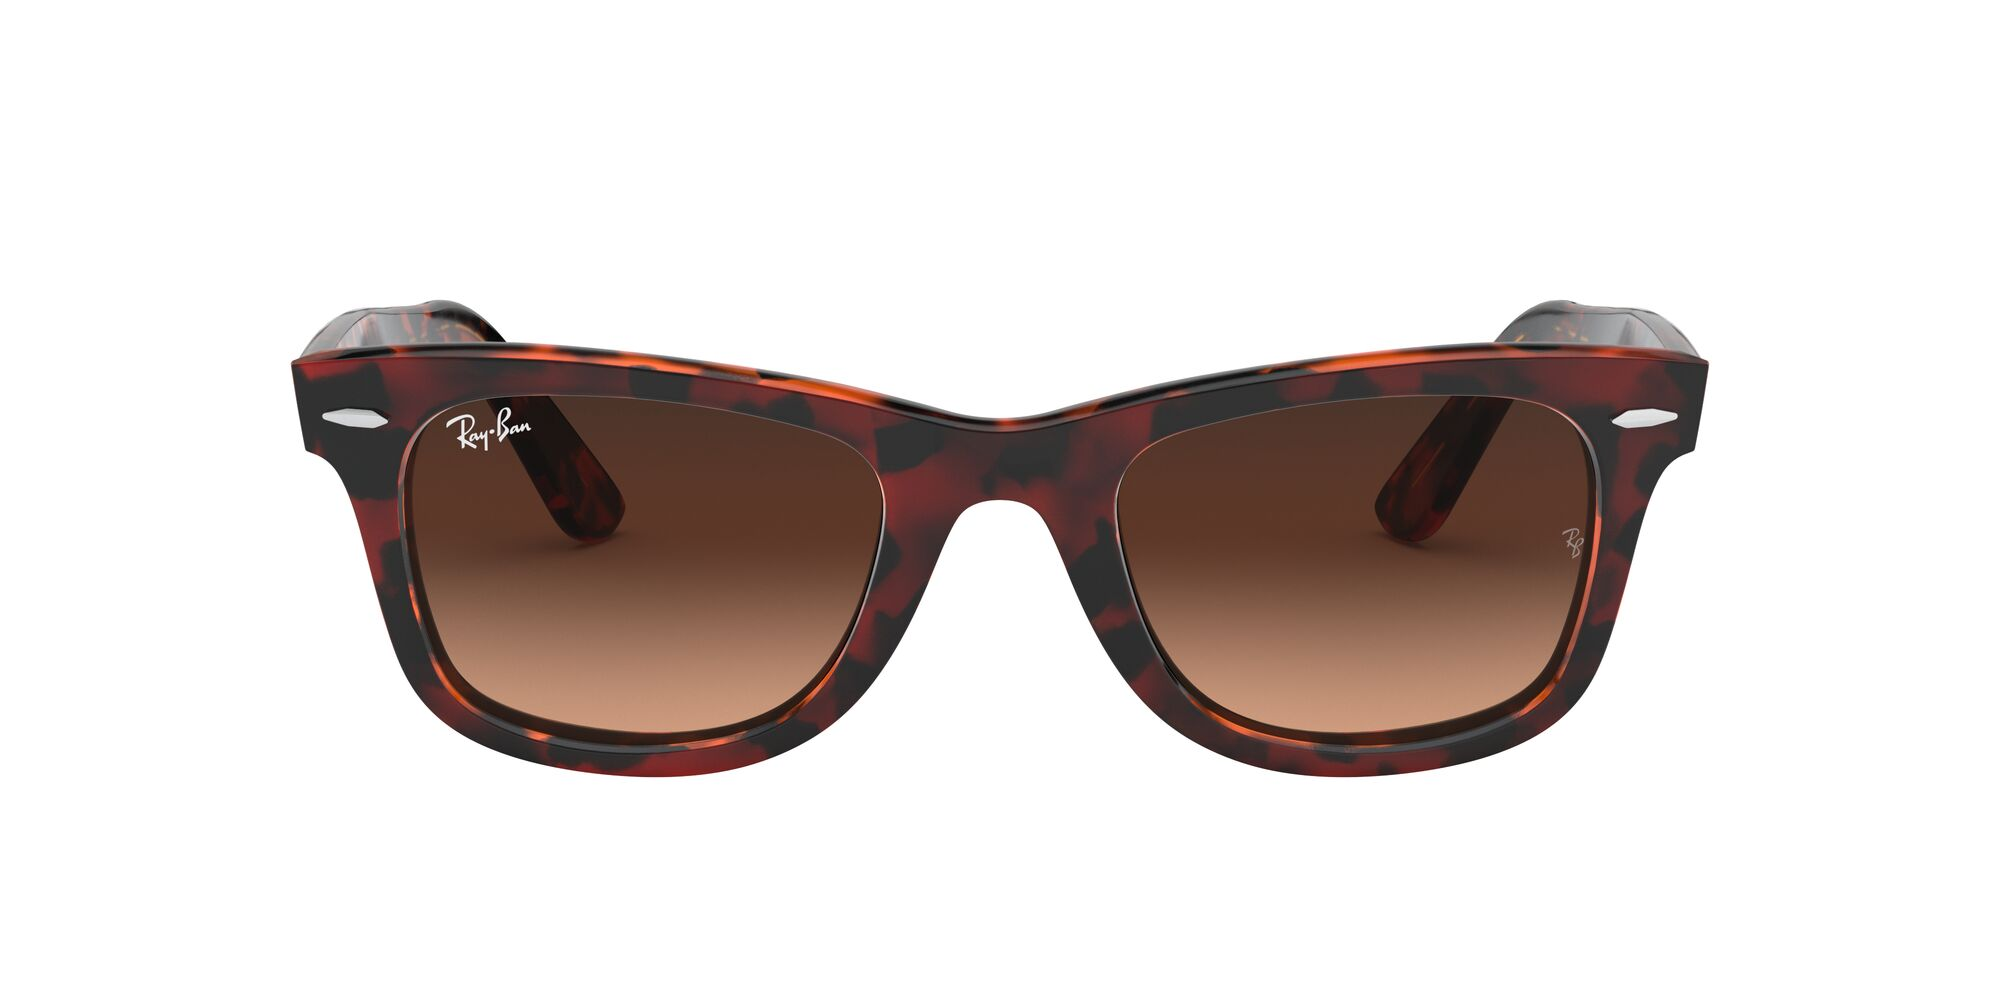 Front Ray-Ban Ray-Ban 0RB2140 1275A5 50/22 Rood/Roze